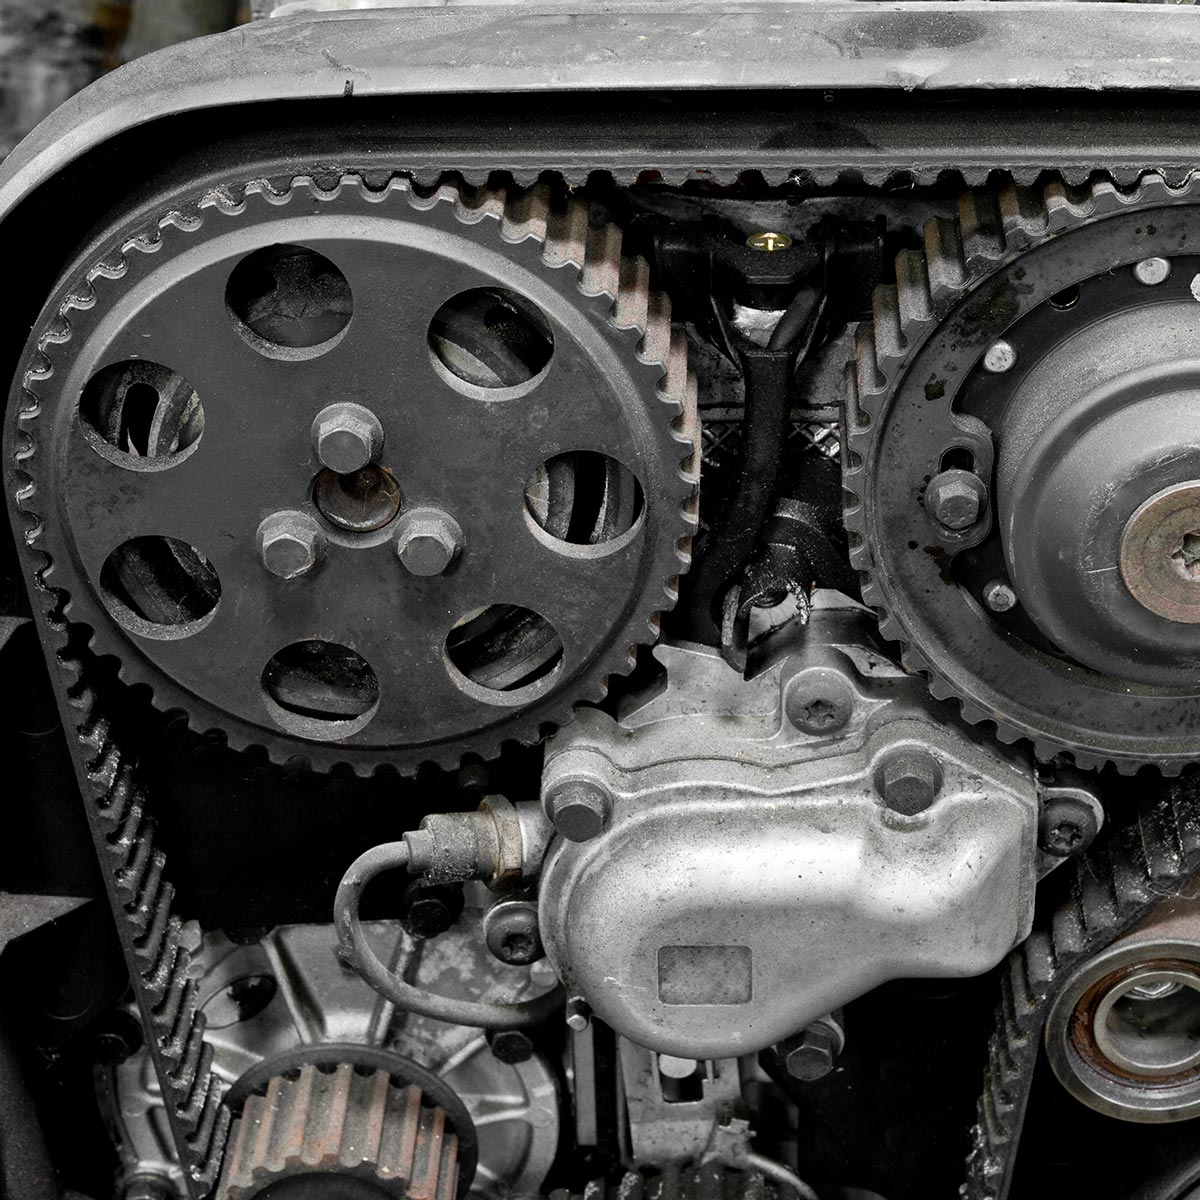 timing belt replacement costs repairs autoguru